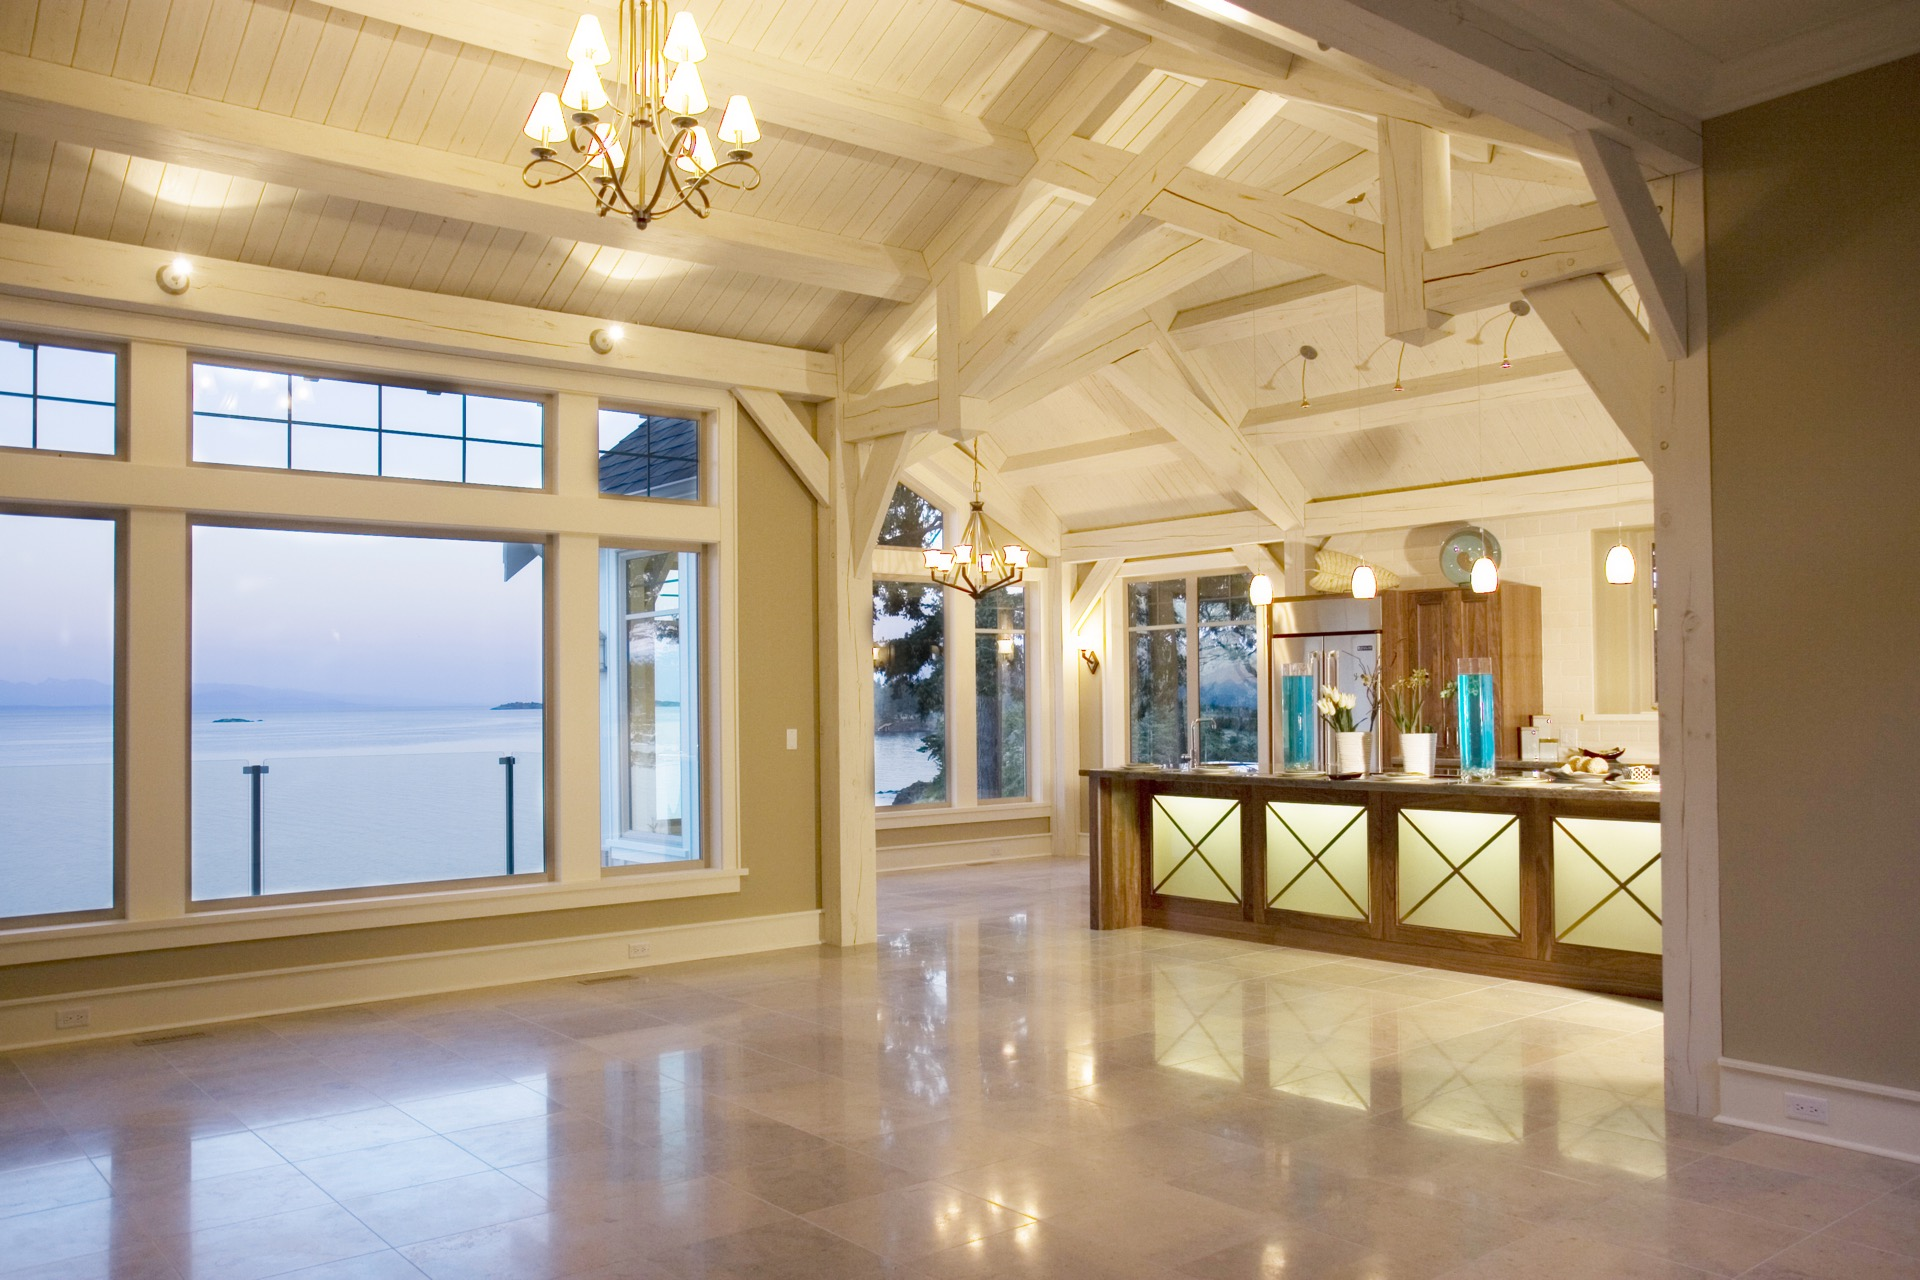 Paul Dabbs Custom Homes - Dolphin 94.jpg